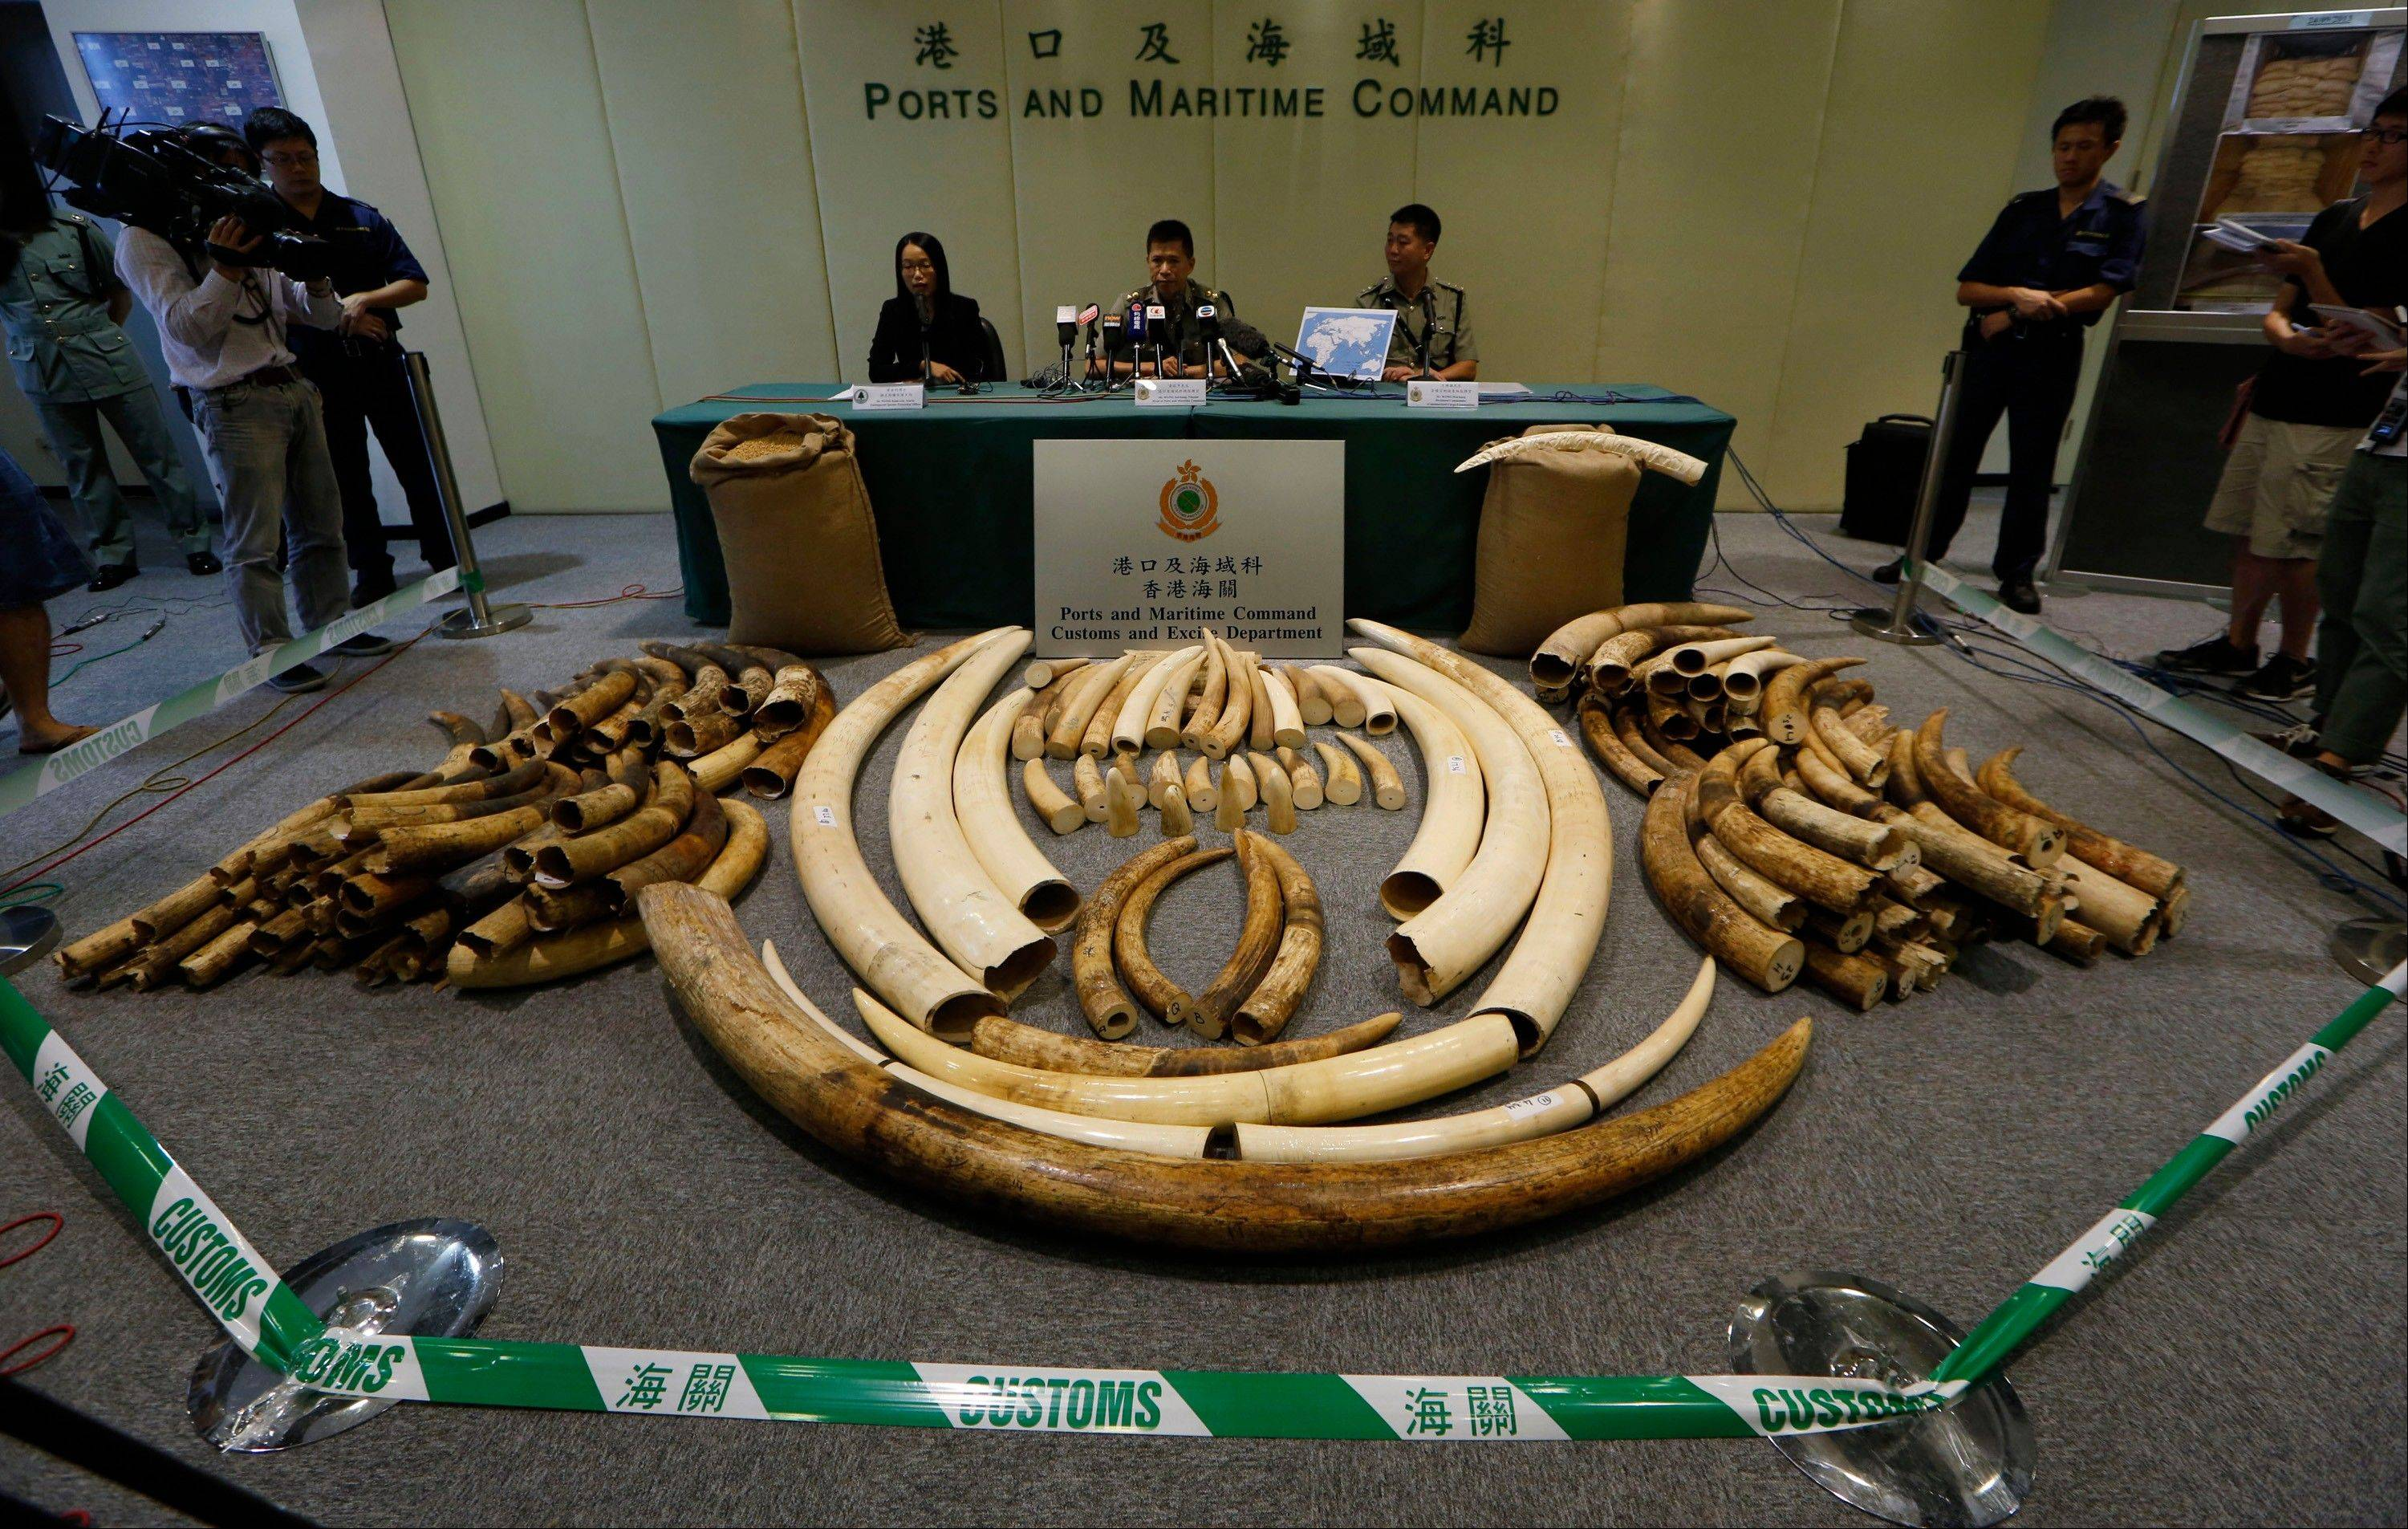 #lephant tusks are displayed after being confiscated by Customs in Hong Kong. The latest shipment, 189 tusks worth $1.5 million hidden in soybean sacks in a shipping container, was one of four major busts this year. Ivory is known as �white gold� because of the rich prices it commands on the black market. Hong Kong has put values of between $1,000 and $2,000 a kilogram on ivory it seized this year.